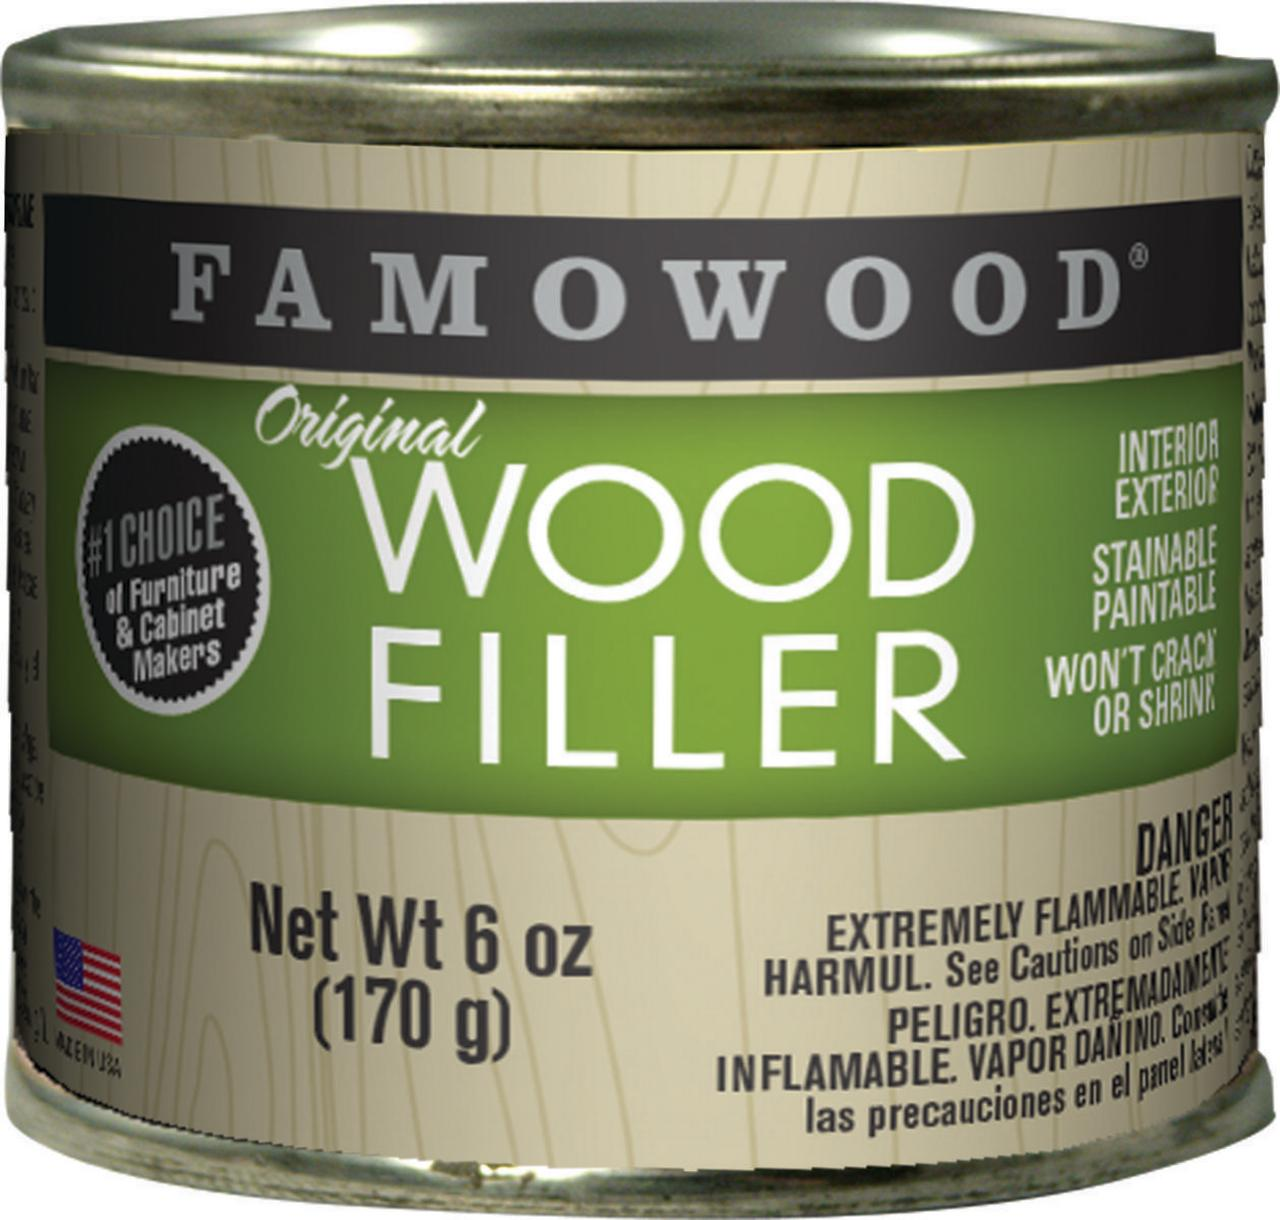 Eclectic Famowood Original Solvent Based Wood Filler, 6 oz Can, Mahogany, 15 min